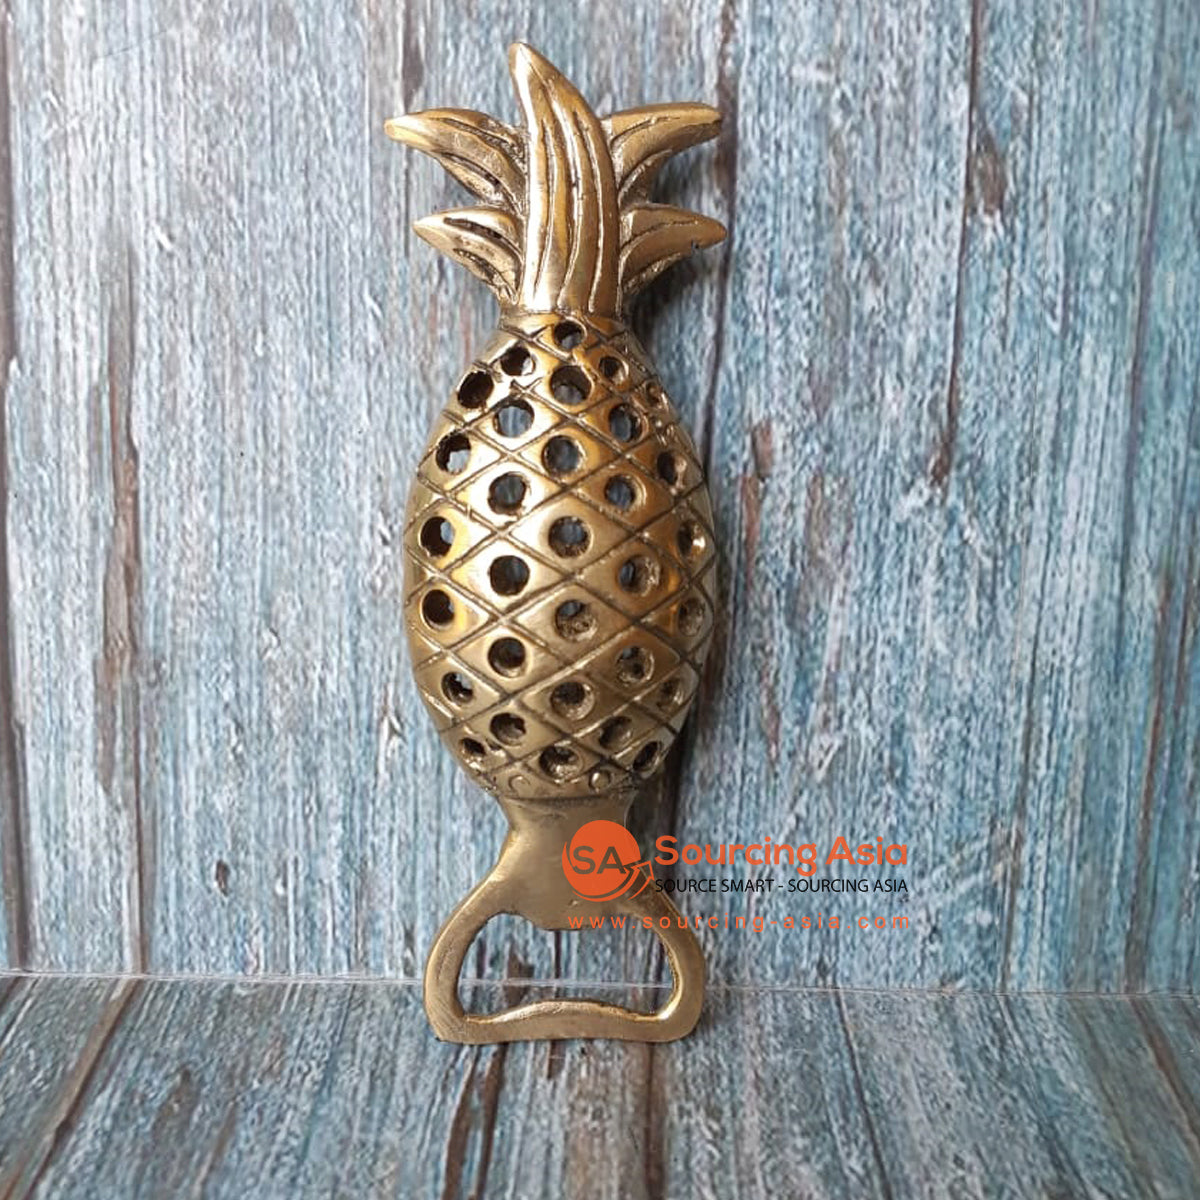 GB172 BRONZE BOTTLE OPENER PINEAPPLE